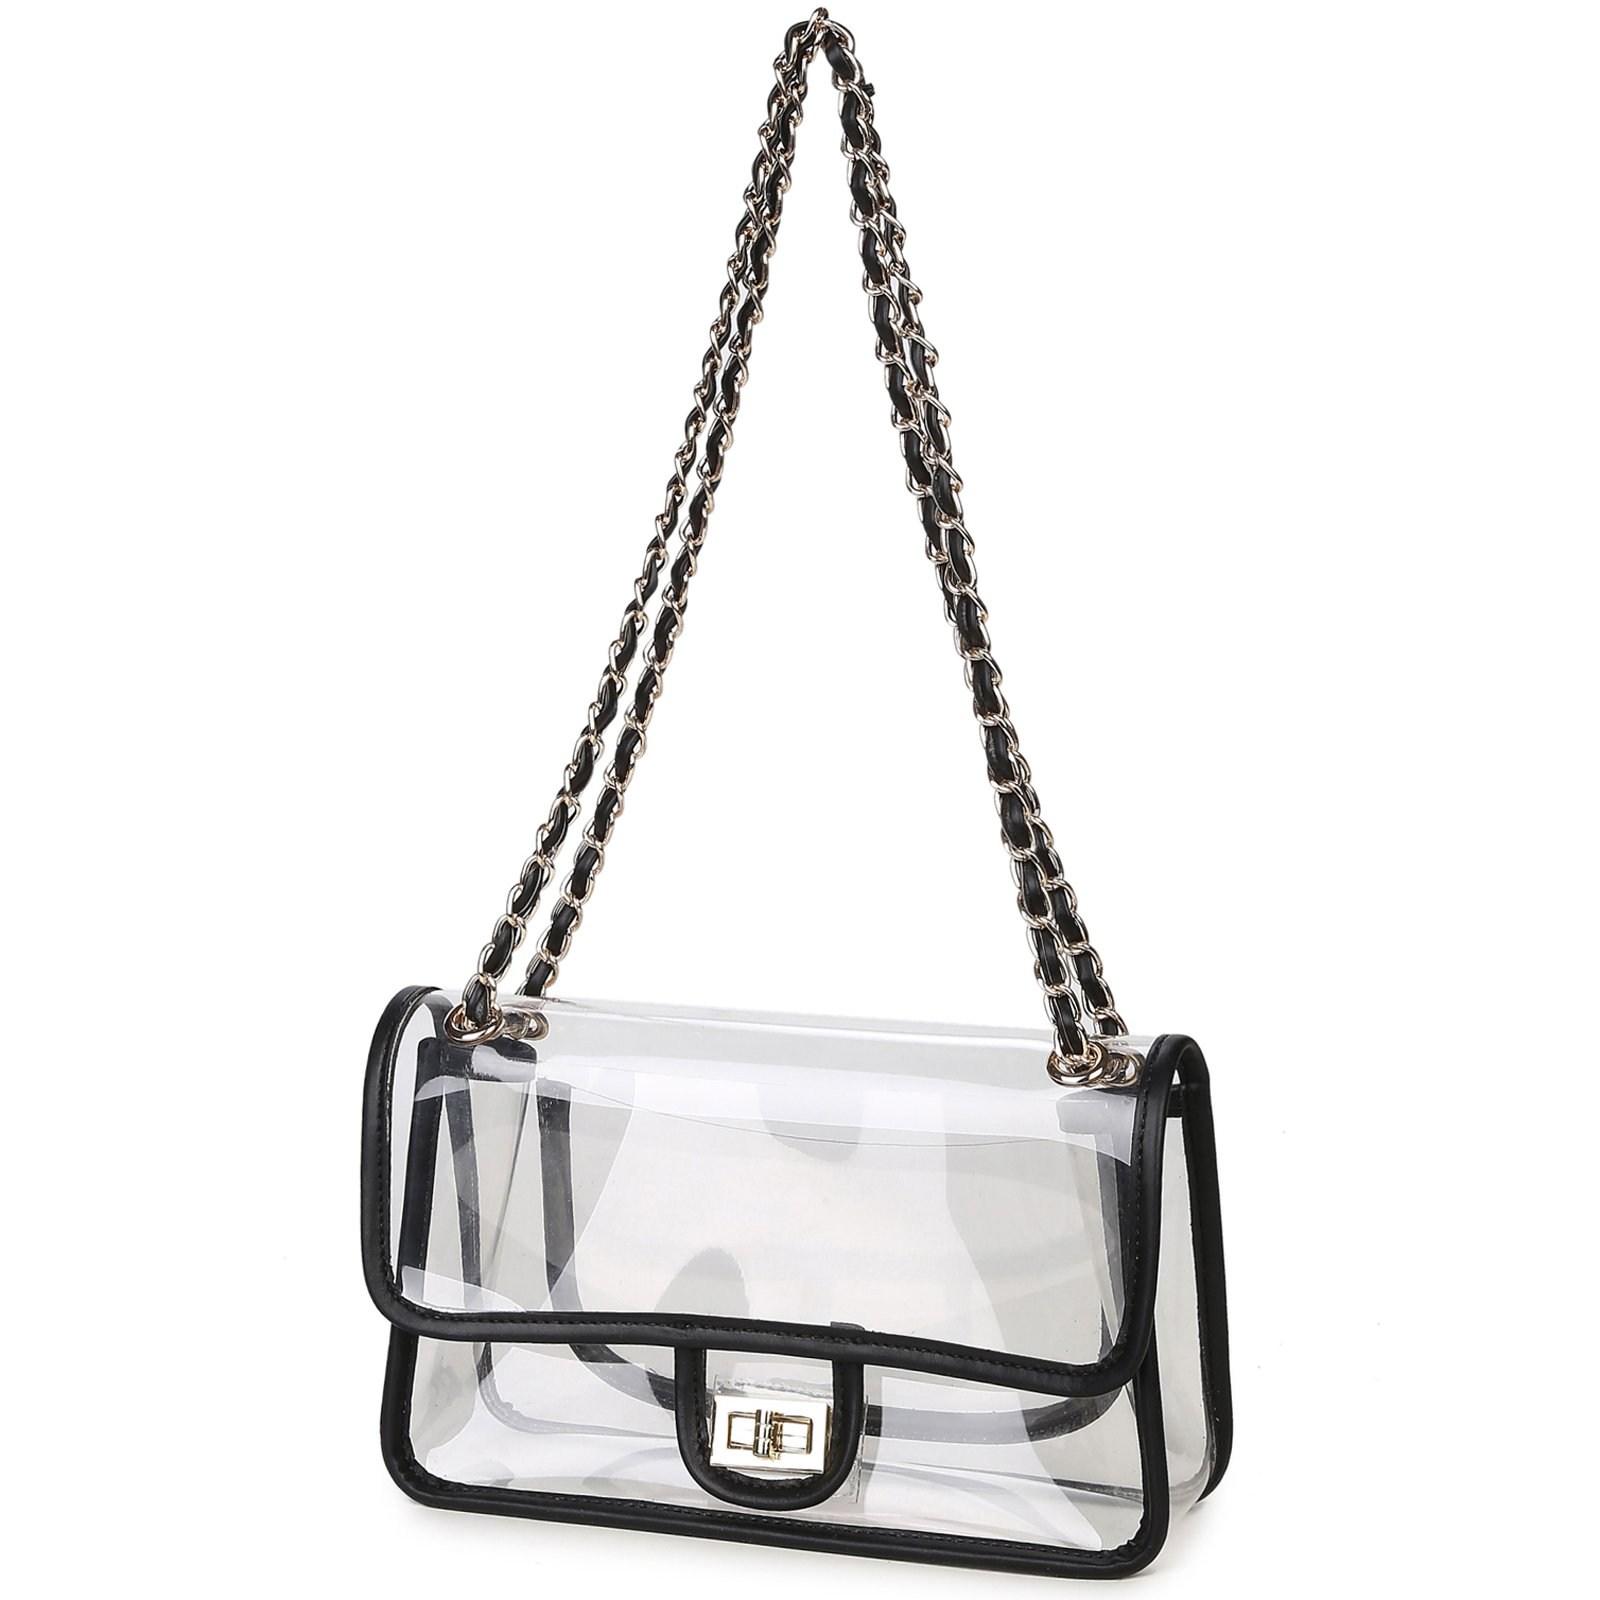 LAM GALLERY Womens Clear Handbag Purses NFL Stadium Approved Clear Bag for Football Games Turn Lock Chain Shoulder Crossbody Bags Transparent PVC Vinyl Plastic Bag See Through Bag for Work Black